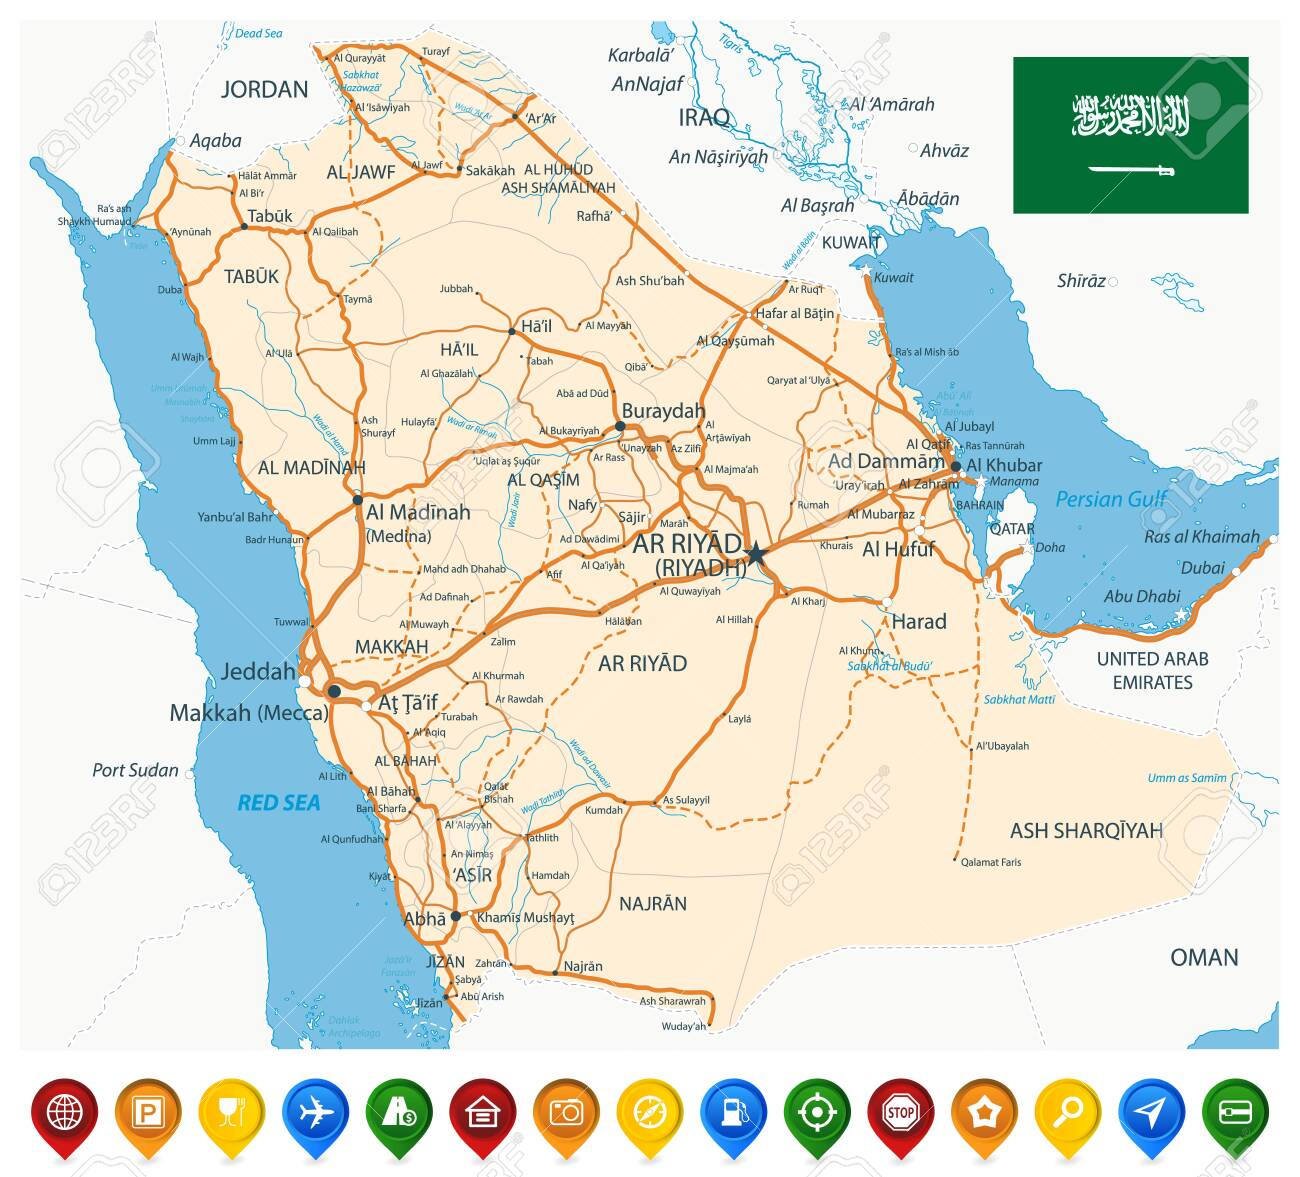 Saudi Arabia Road Map and Colored Map Icons - Image contains.. on dammam road map, eastern australia road map, syria road map, makkah road map, riyadh road map, al riyadh map, jordan country highway map, pakistan road map, gulf gcc map, sinai peninsula road map, nevis road map, montserrat road map, costa rica road map, french guiana road map, brazil road map, st barts road map, mecca road map, paraguay road map, medina road map, palau road map,